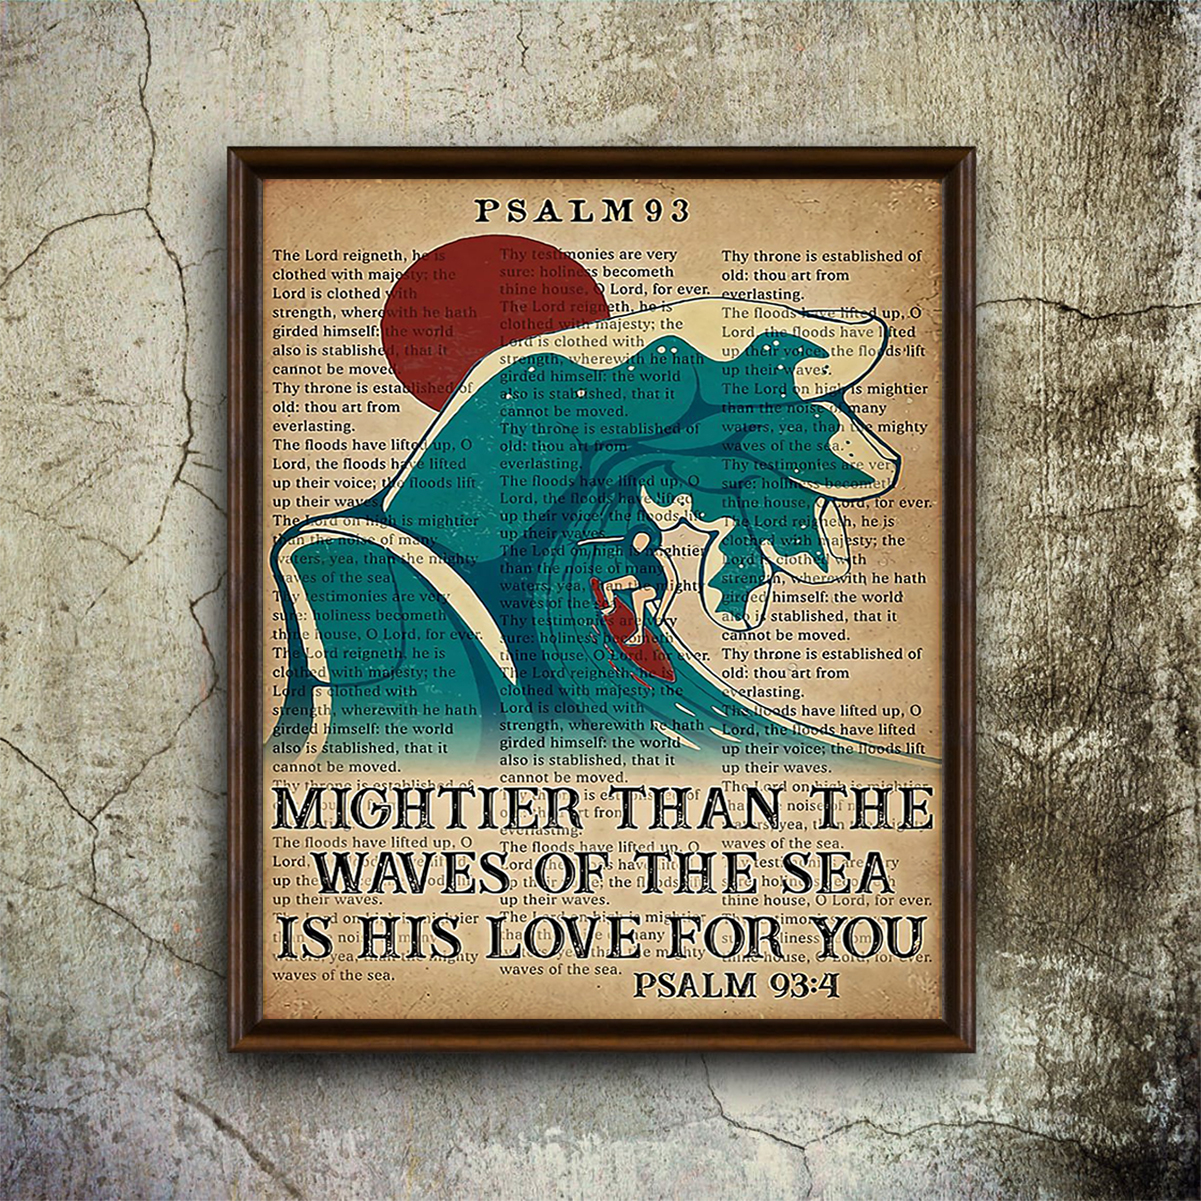 Surfing mightier than the waves of the sea is his love for you poster A1